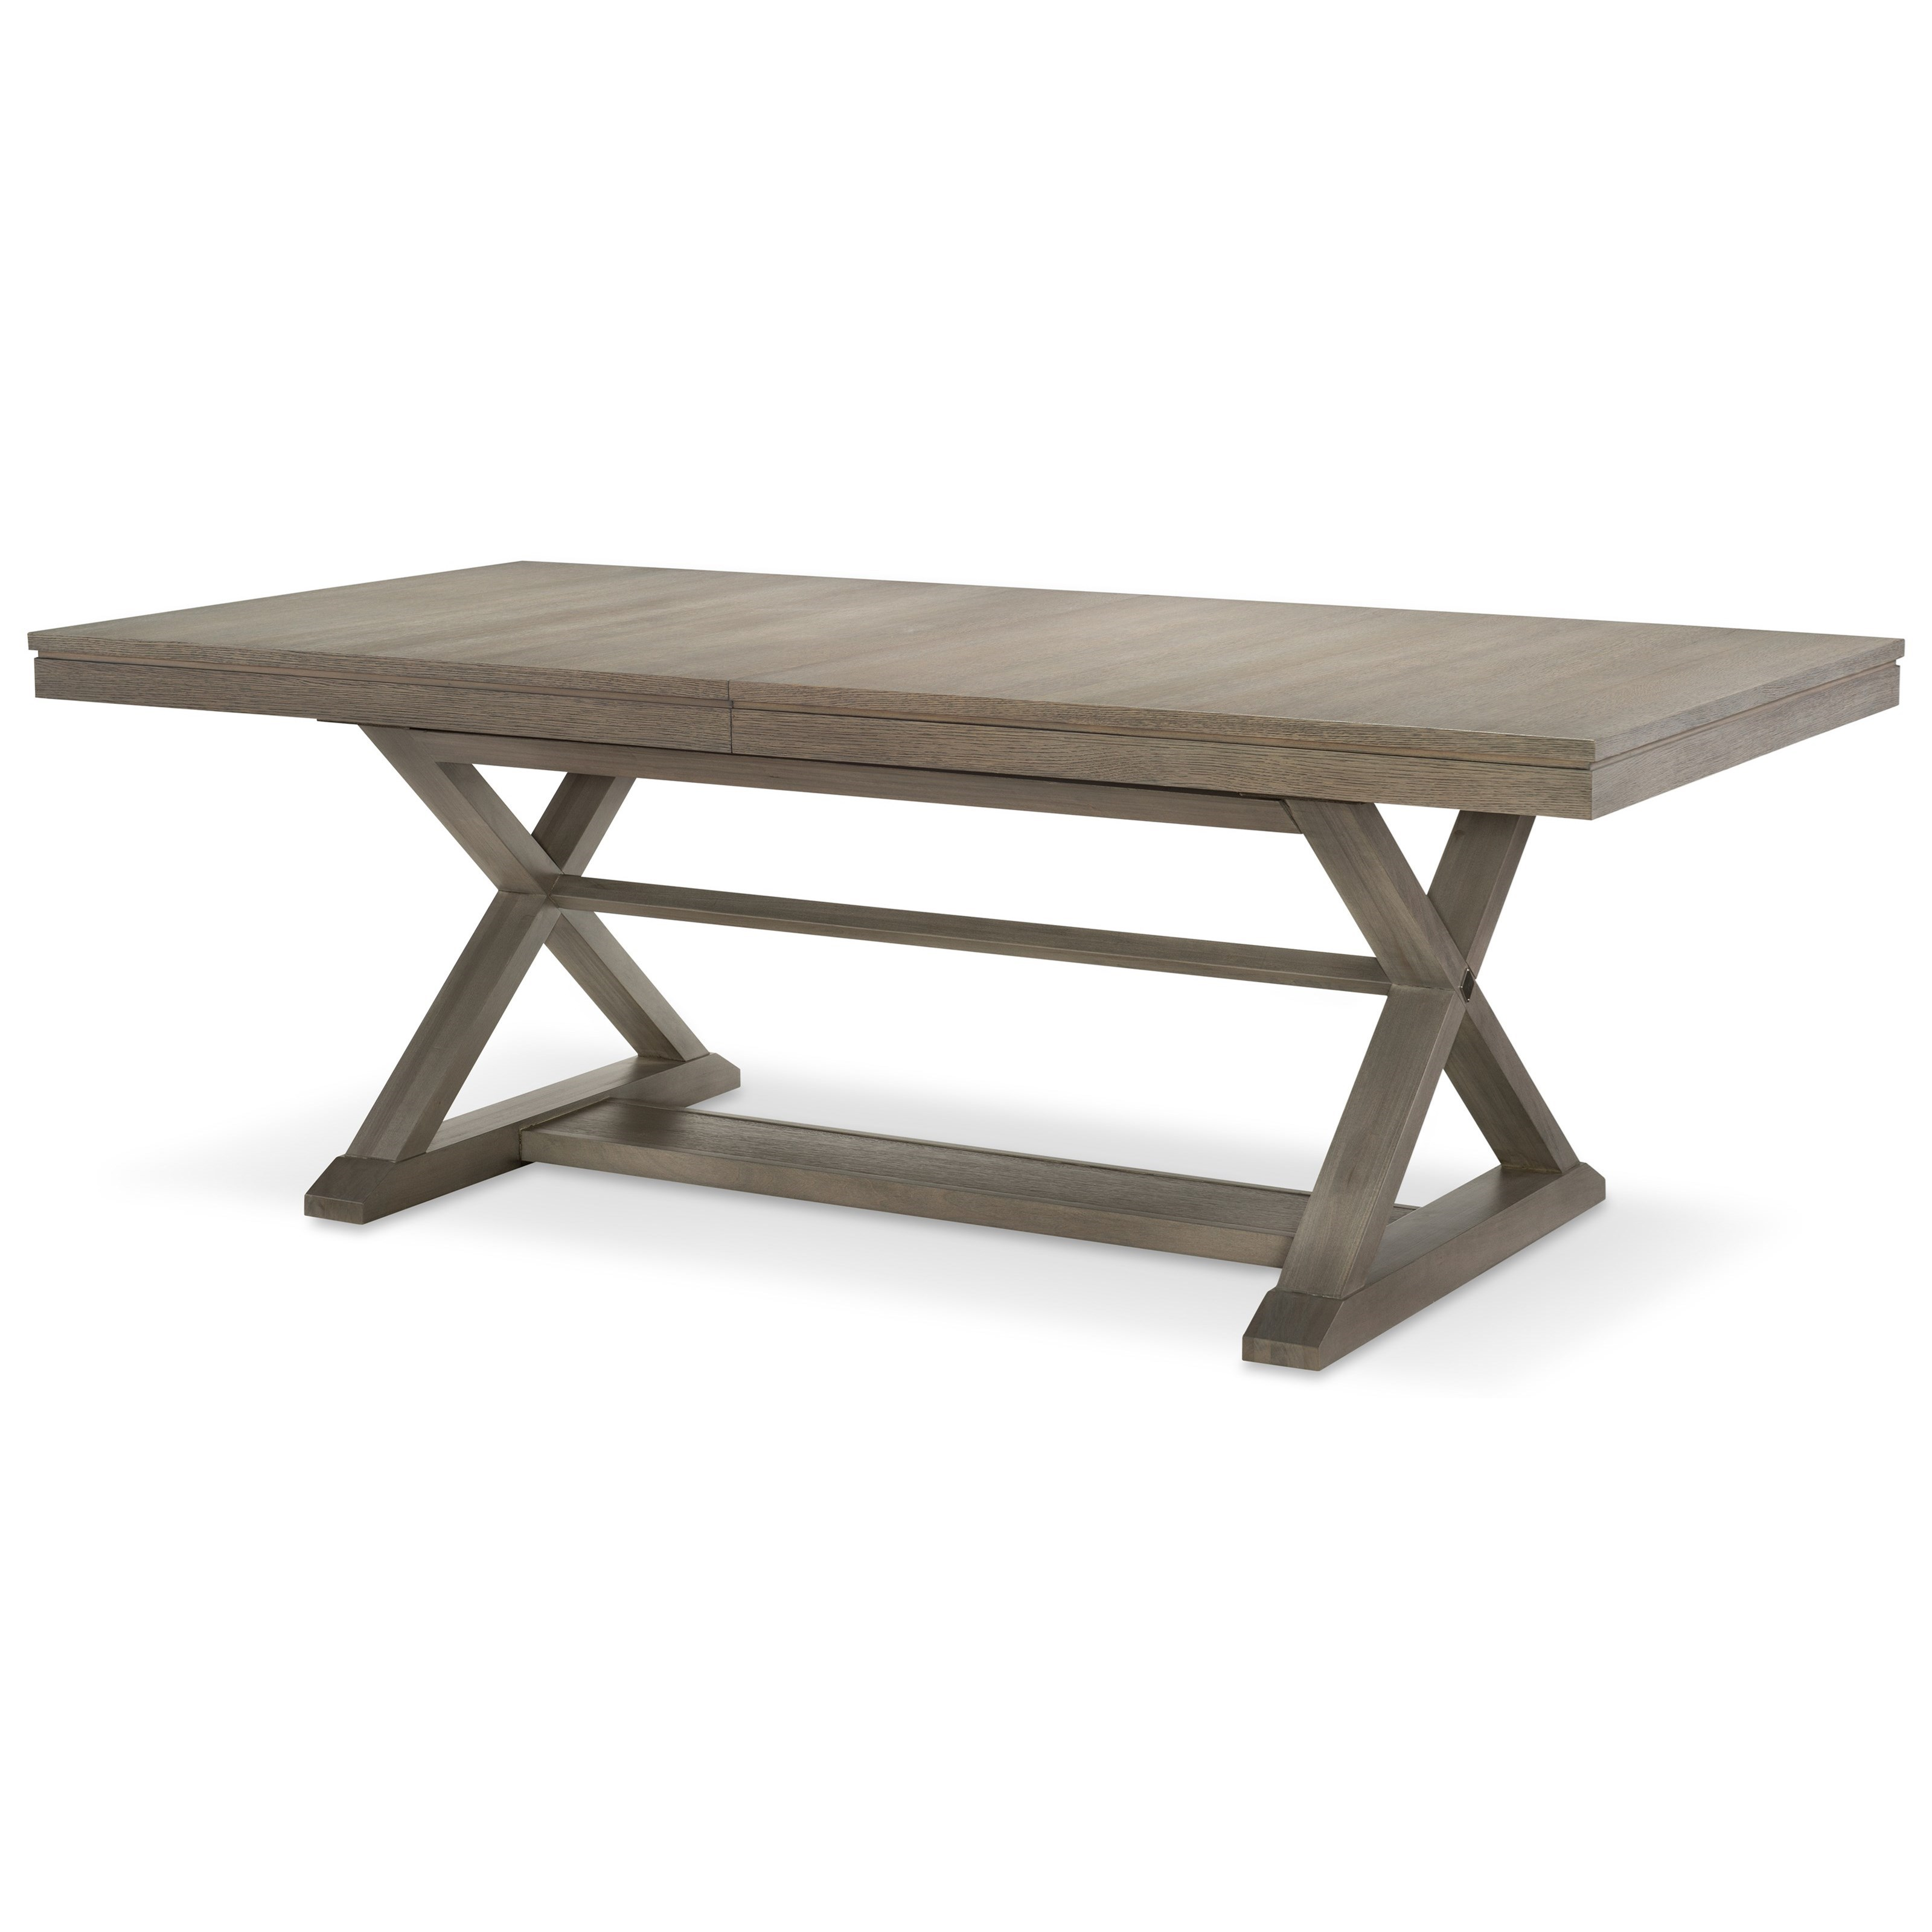 Rachael Ray Home by Legacy Classic High Line Trestle Table  : products2Frachaelrayhome2Fcolor2Fhigh20line 15728867186000 621k b1 from www.fashionfurnitureco.com size 3200 x 3200 jpeg 481kB